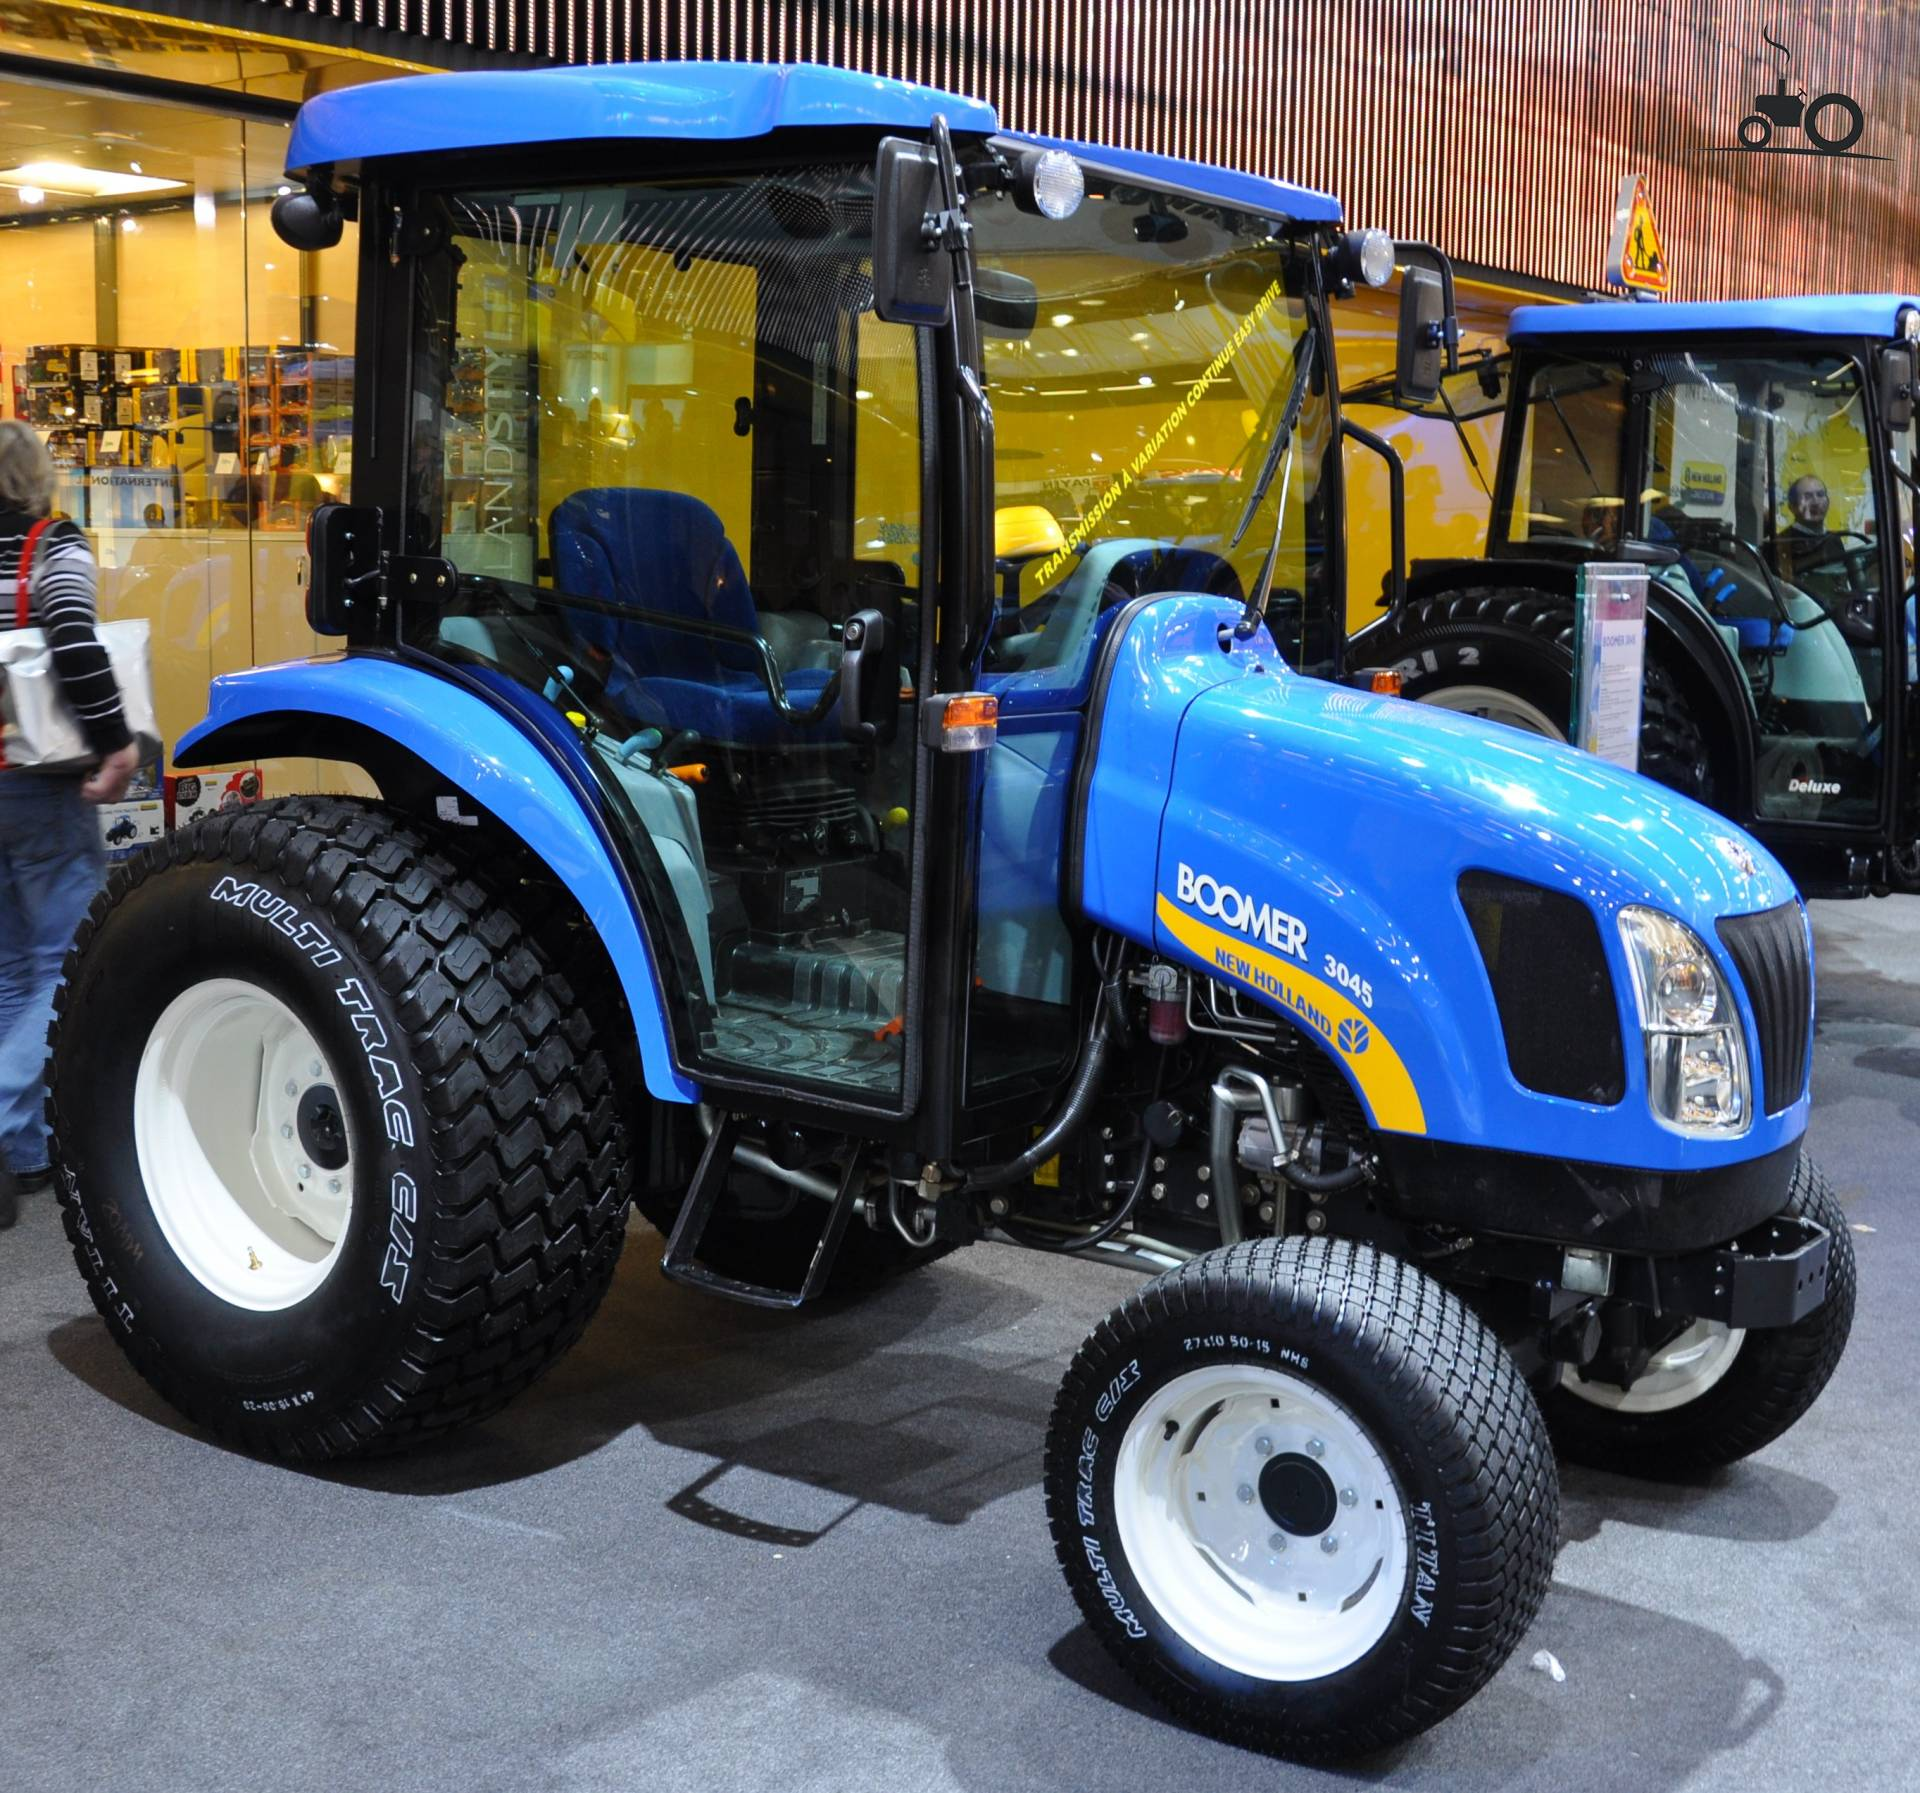 New Holland Boomer 3045 Farm Tractor | New Holland Farm